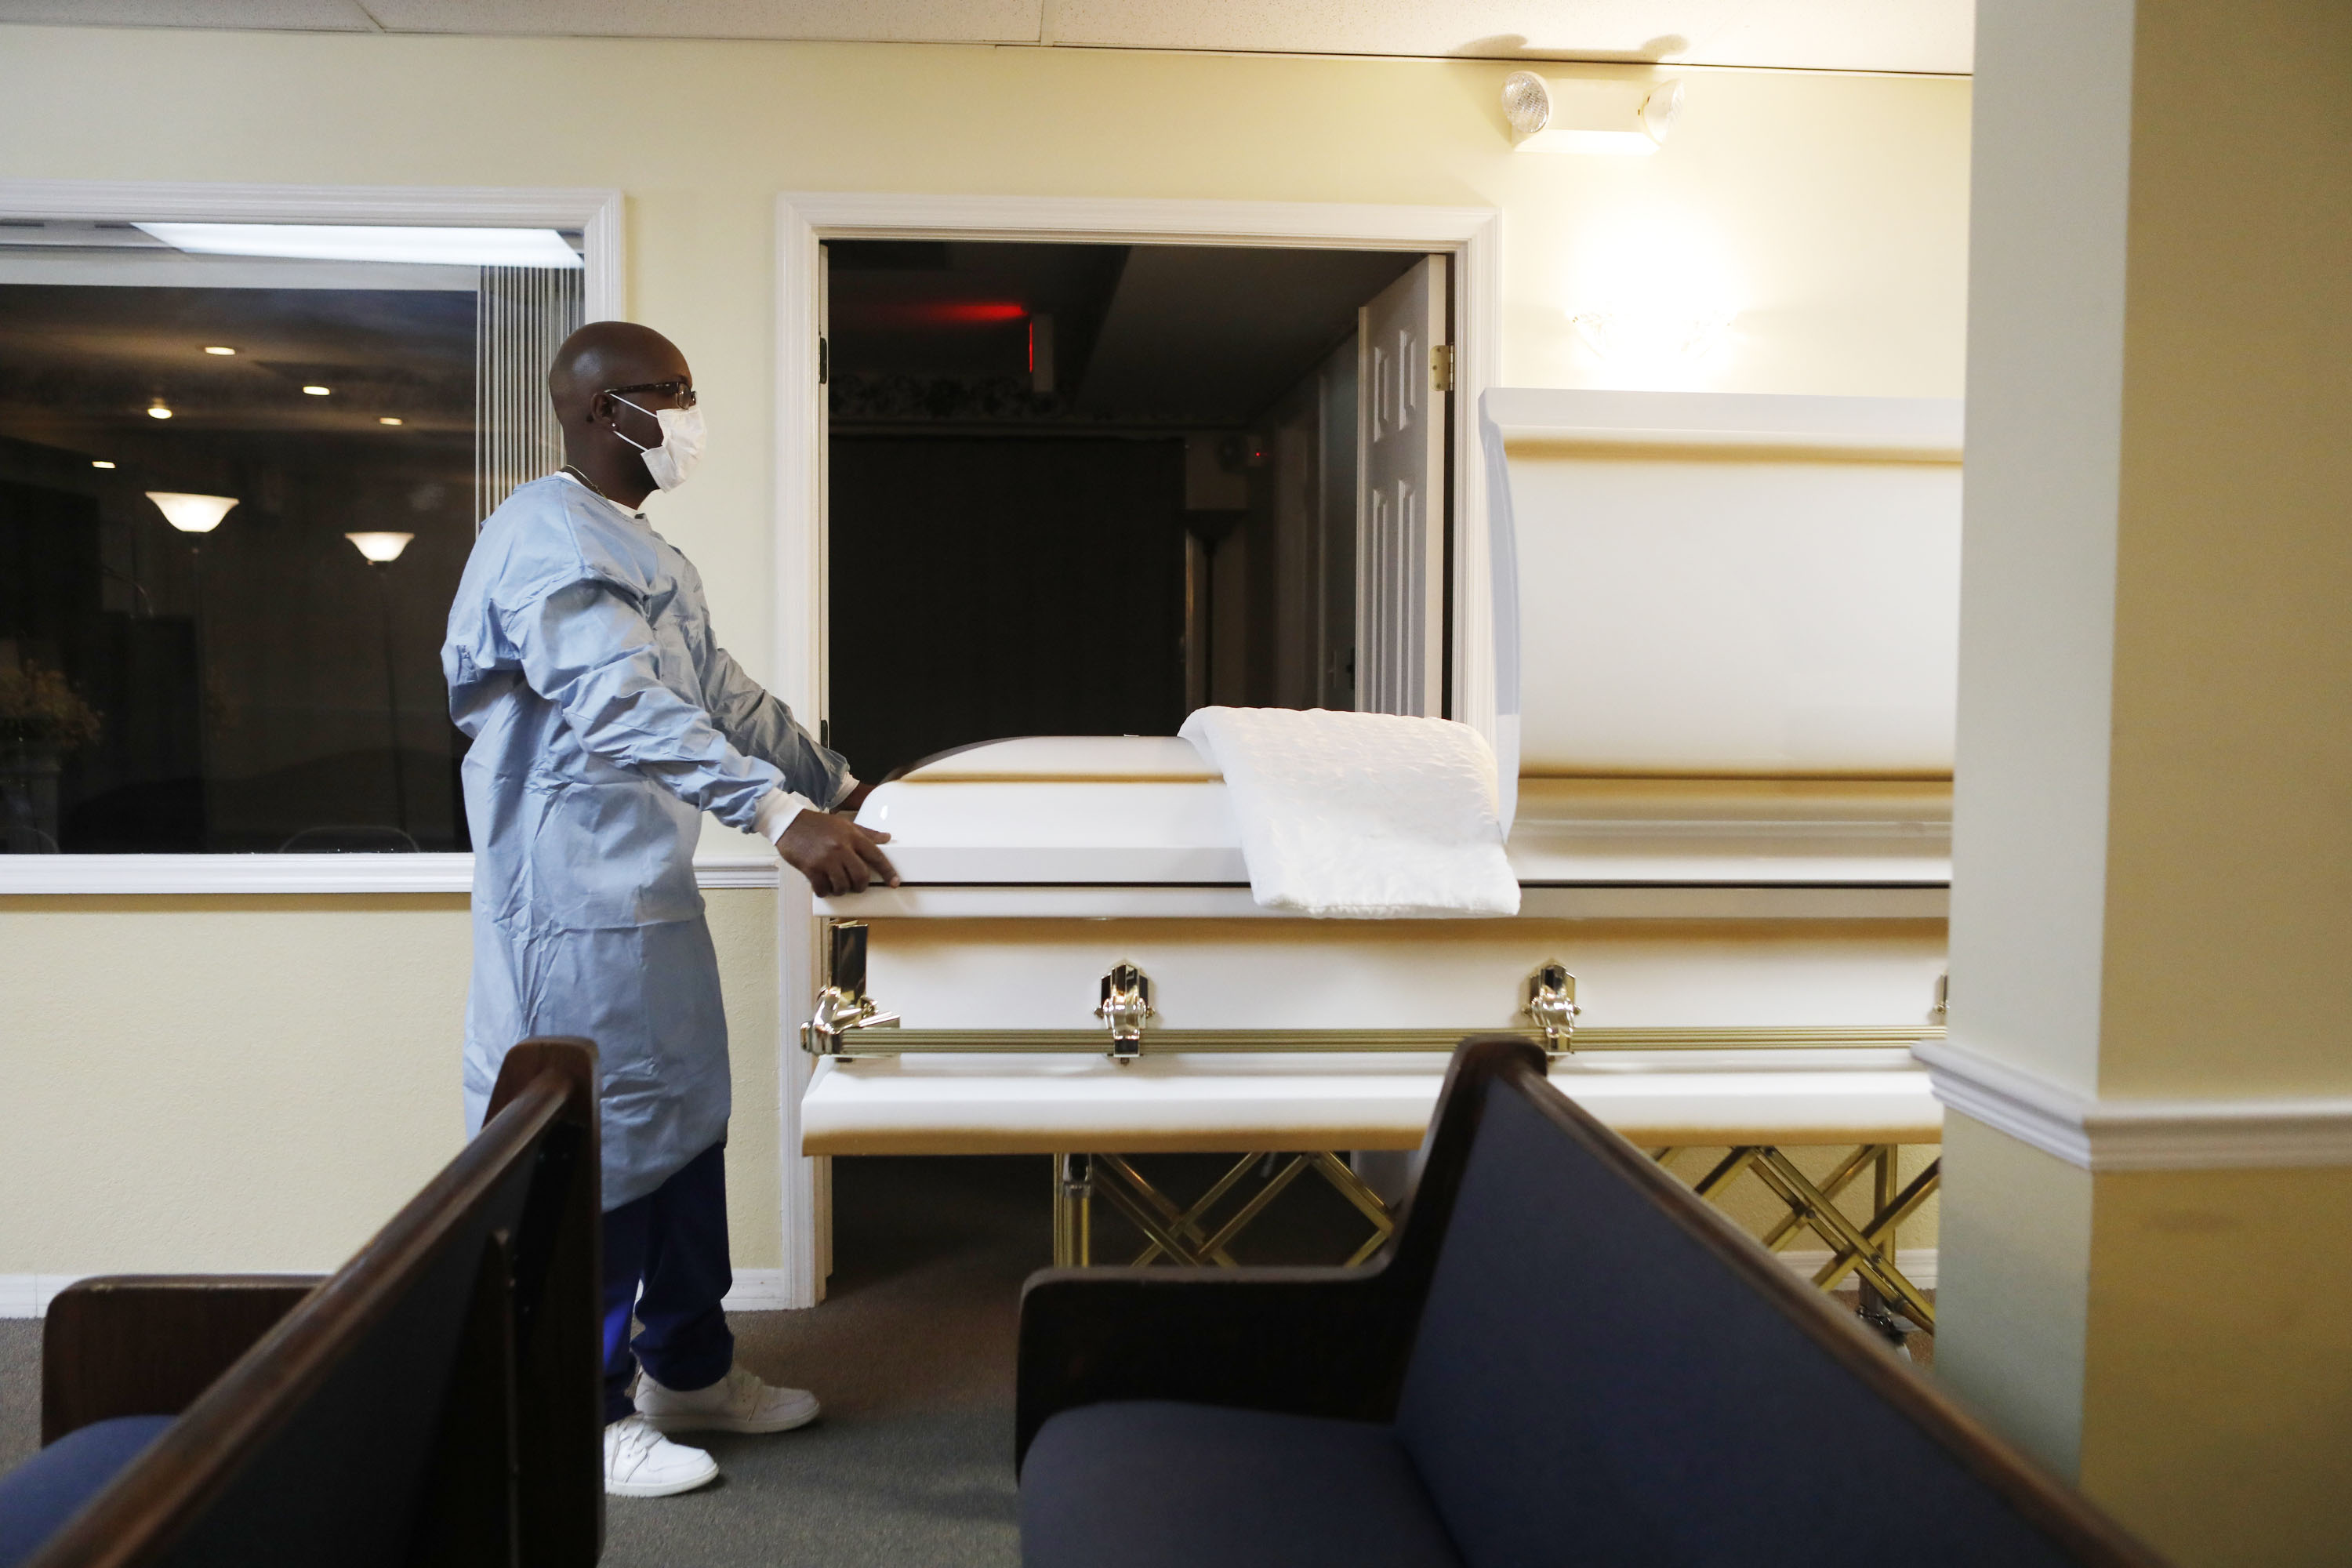 A mortician assistant prepares a funeral service for someone said to have died from Covid-19 at Ray Williams Funeral Home in Tampa, Florida, on August 12.